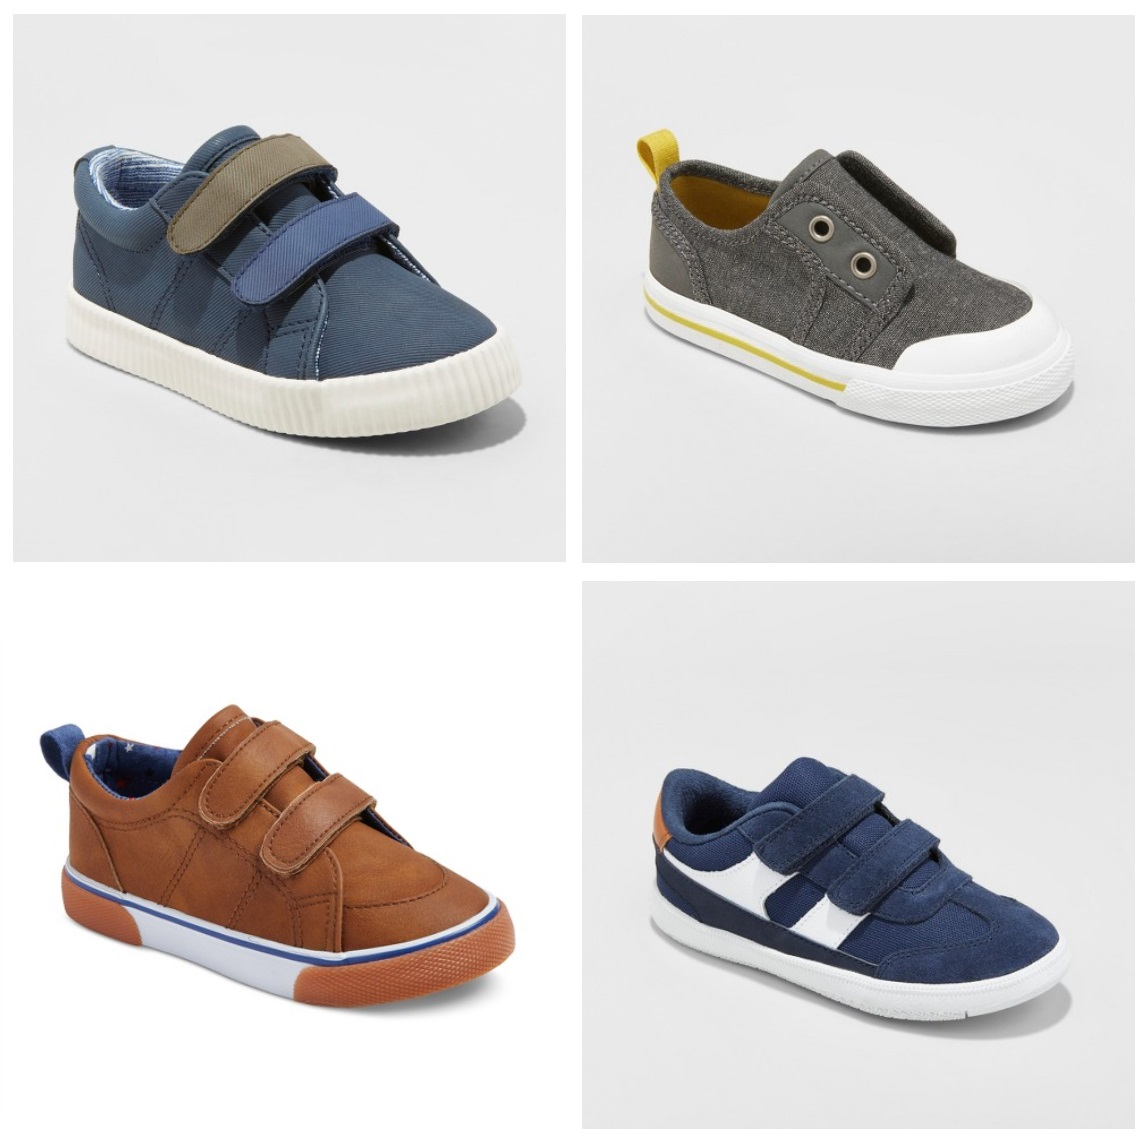 fb1ae4d2d907 Target: Toddler Boy's Cat & Jack Sneakers Only $10 – $15 | Kollel Budget